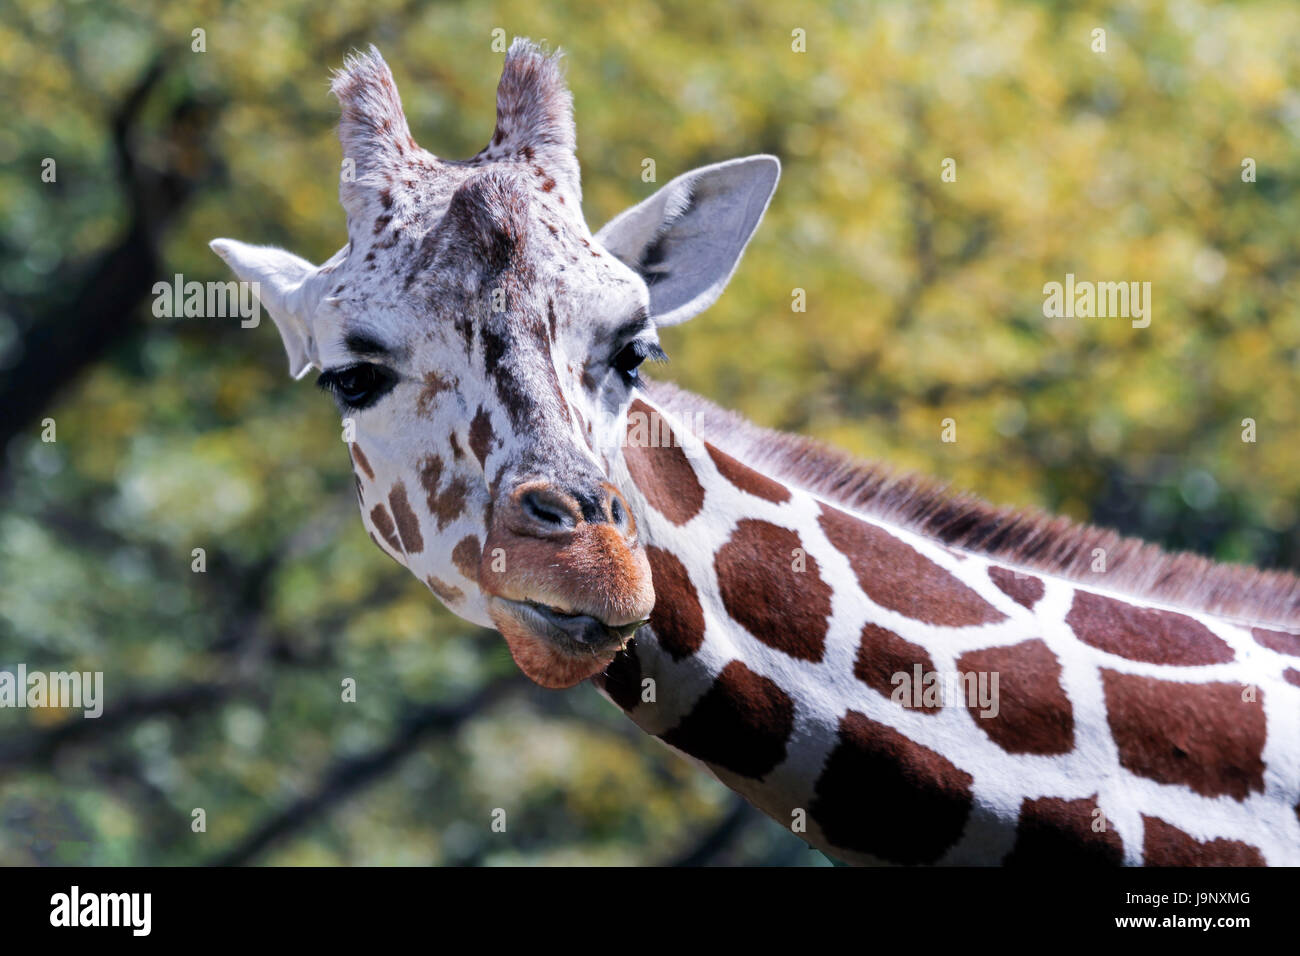 Giraffe and baby - Stock Image